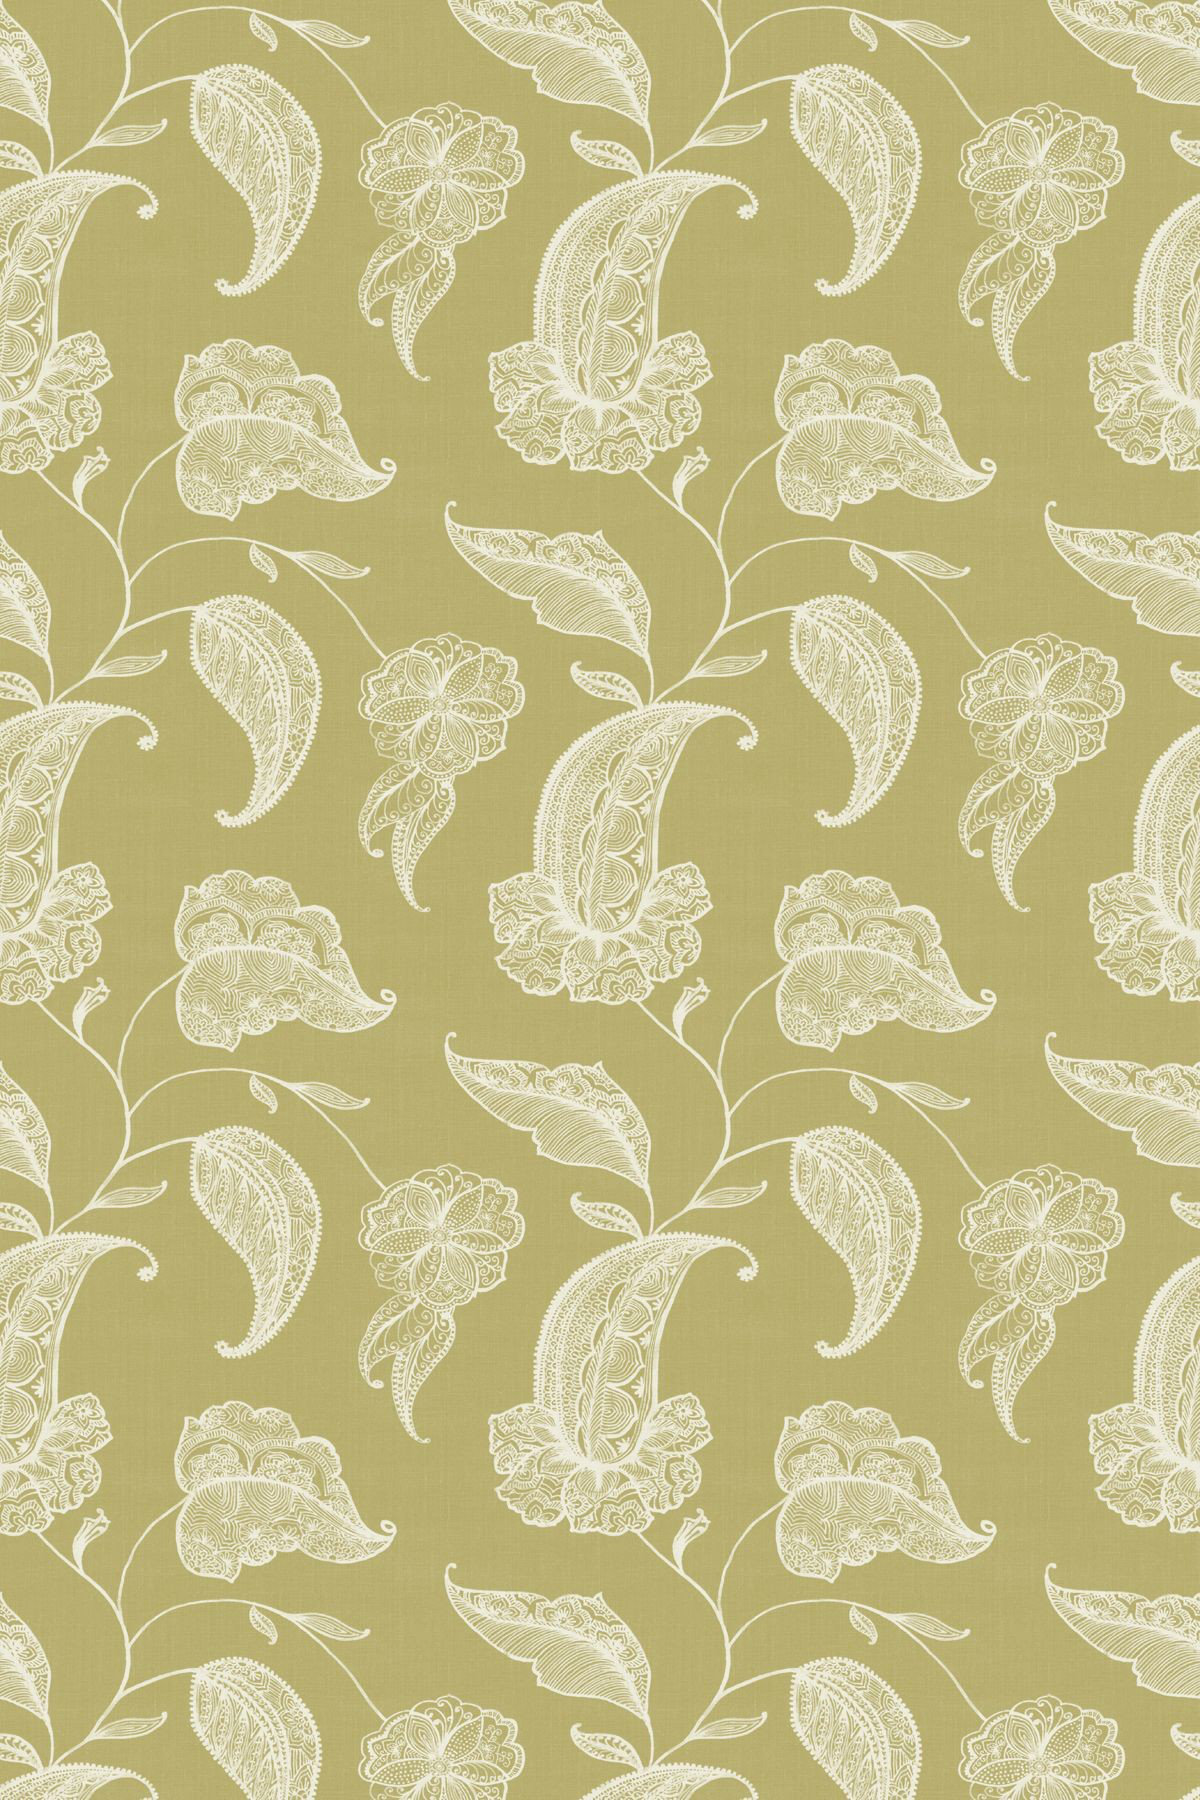 Image of Blendworth Fabric Curiosity, Curiosit/003